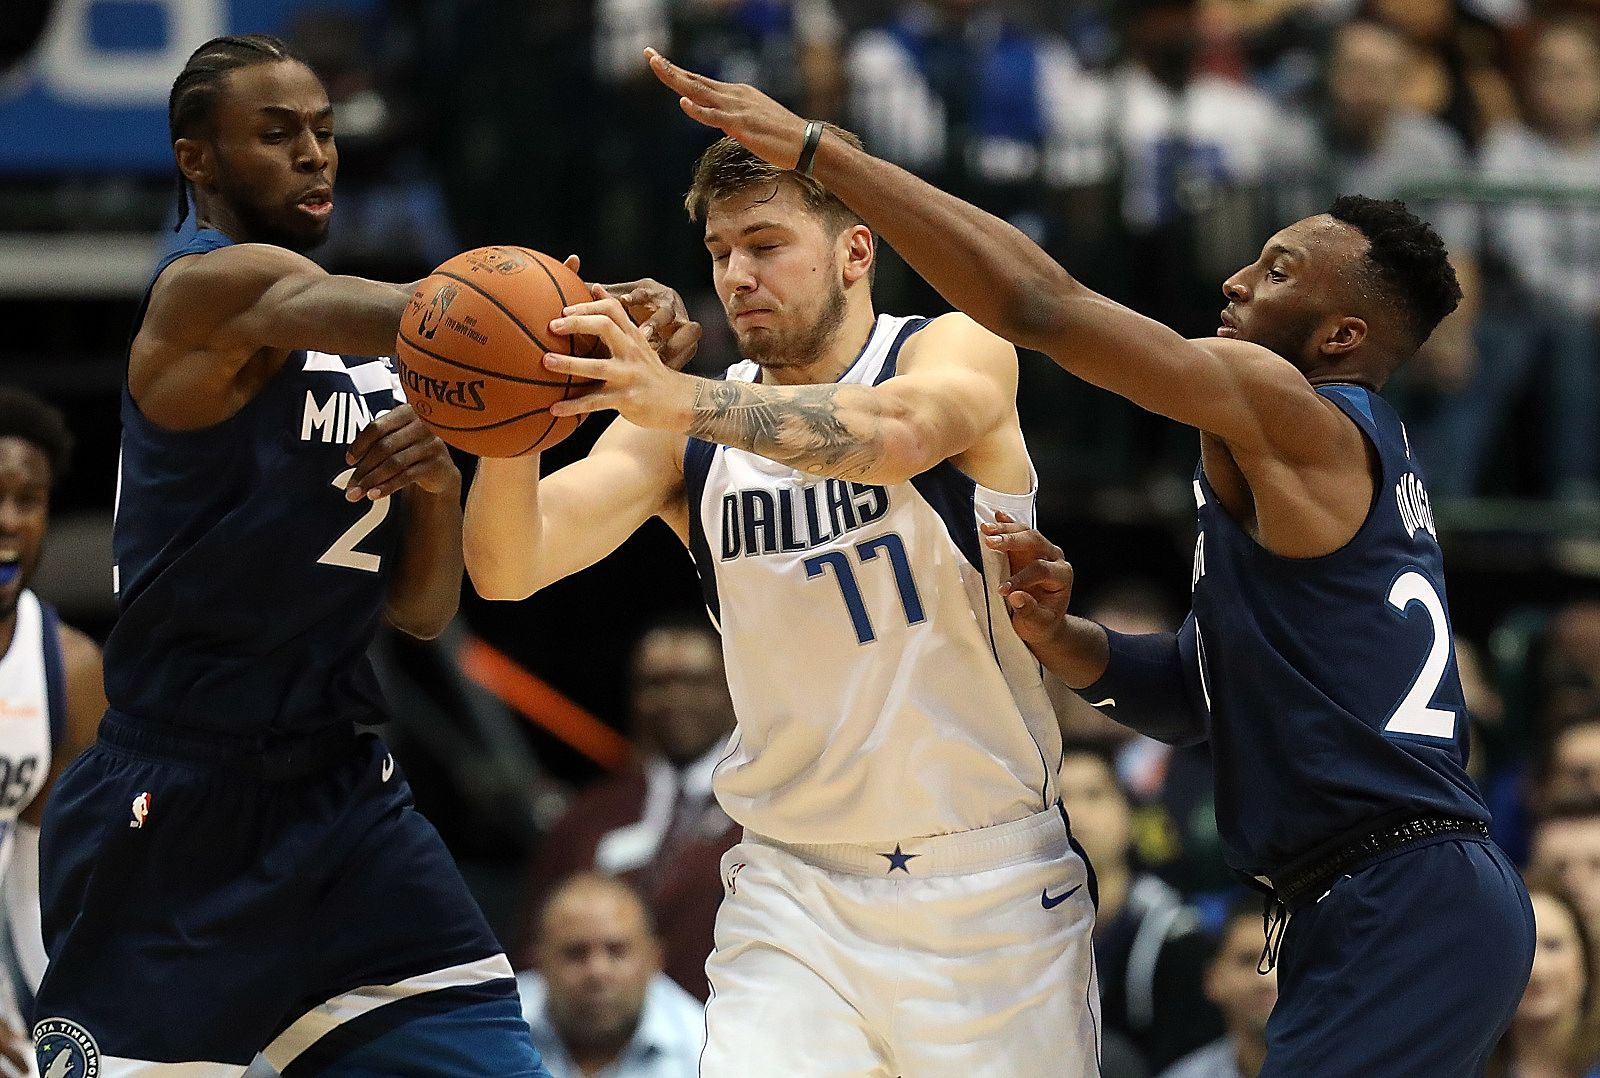 mavs rookie luka doncic ranked near top of usa todays - 1024×690